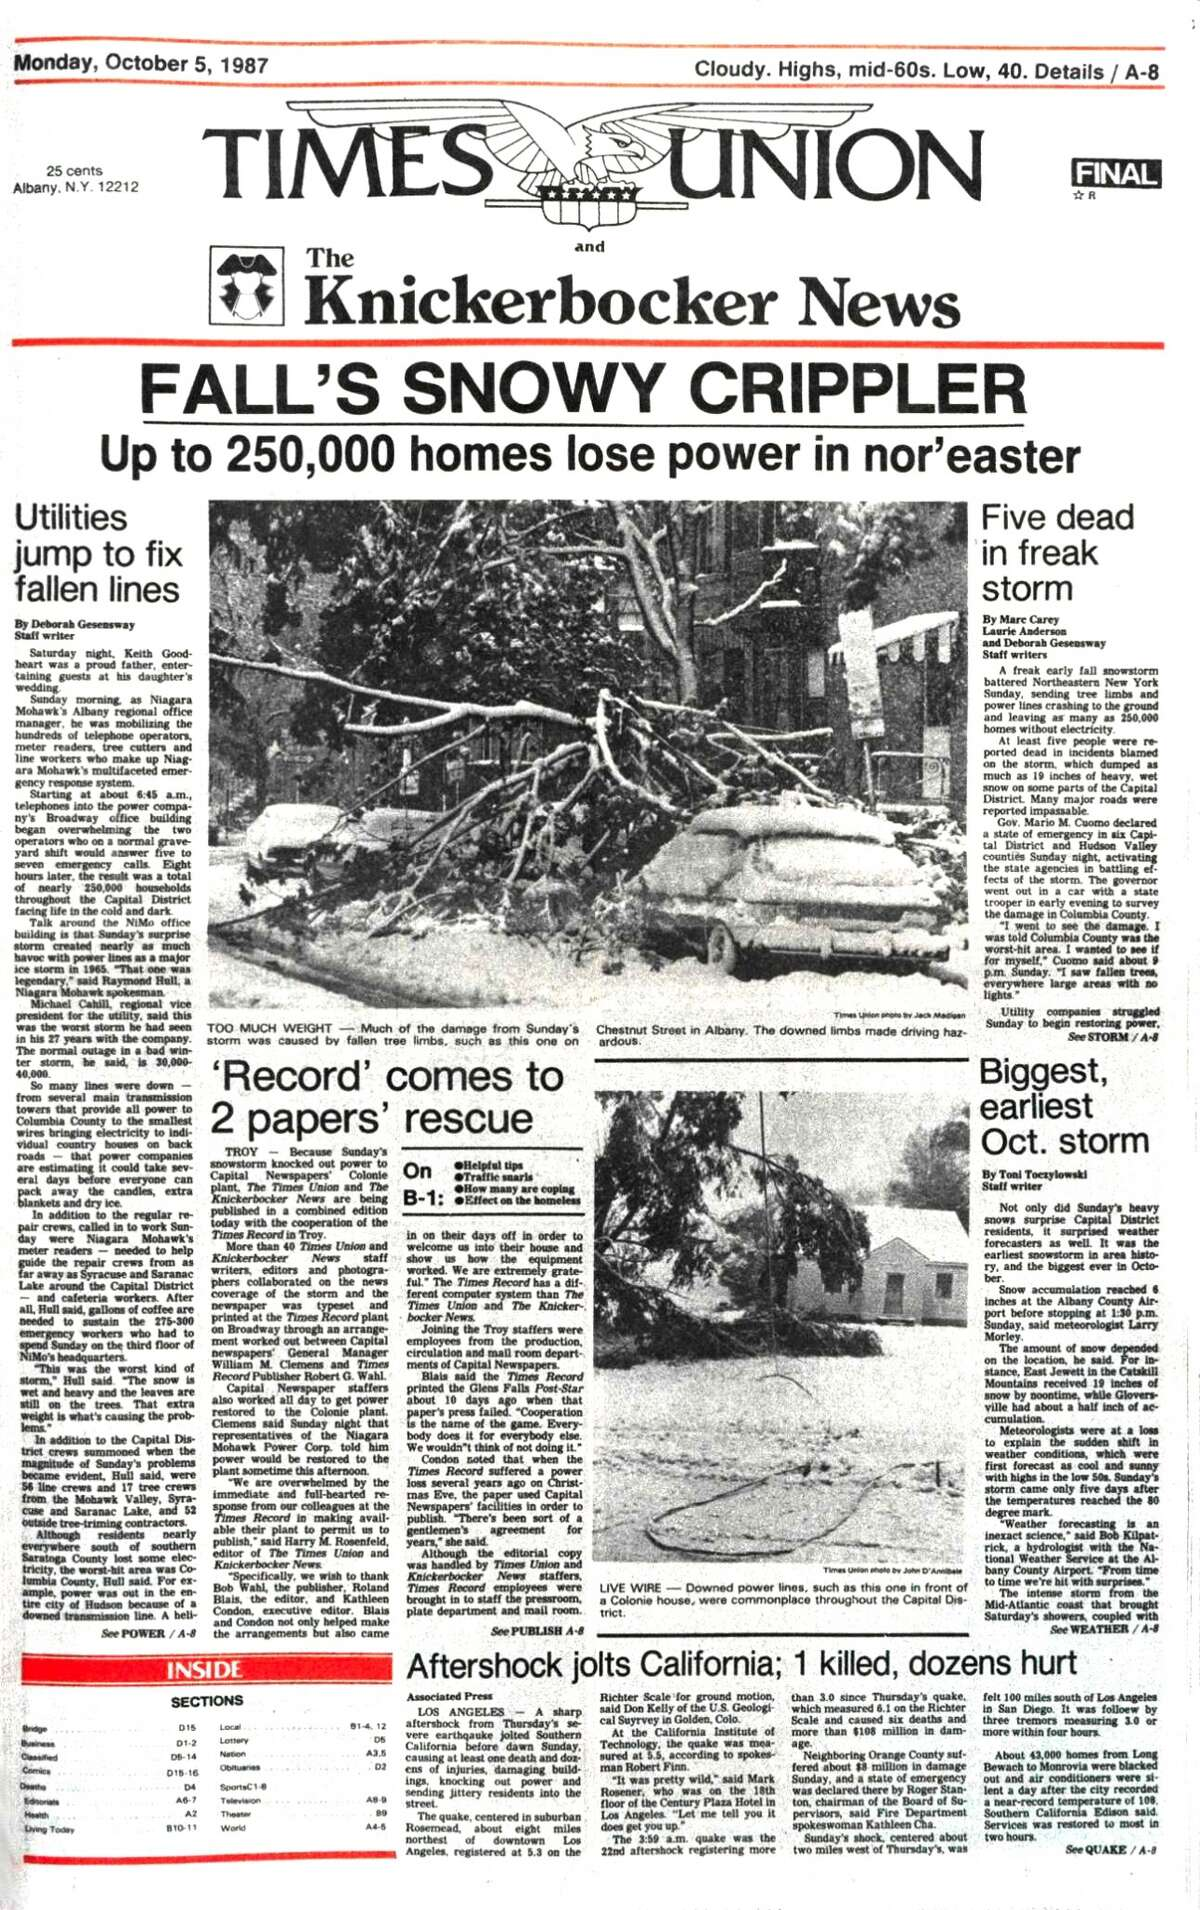 Oct. 4, 1987, edition of the Times Union